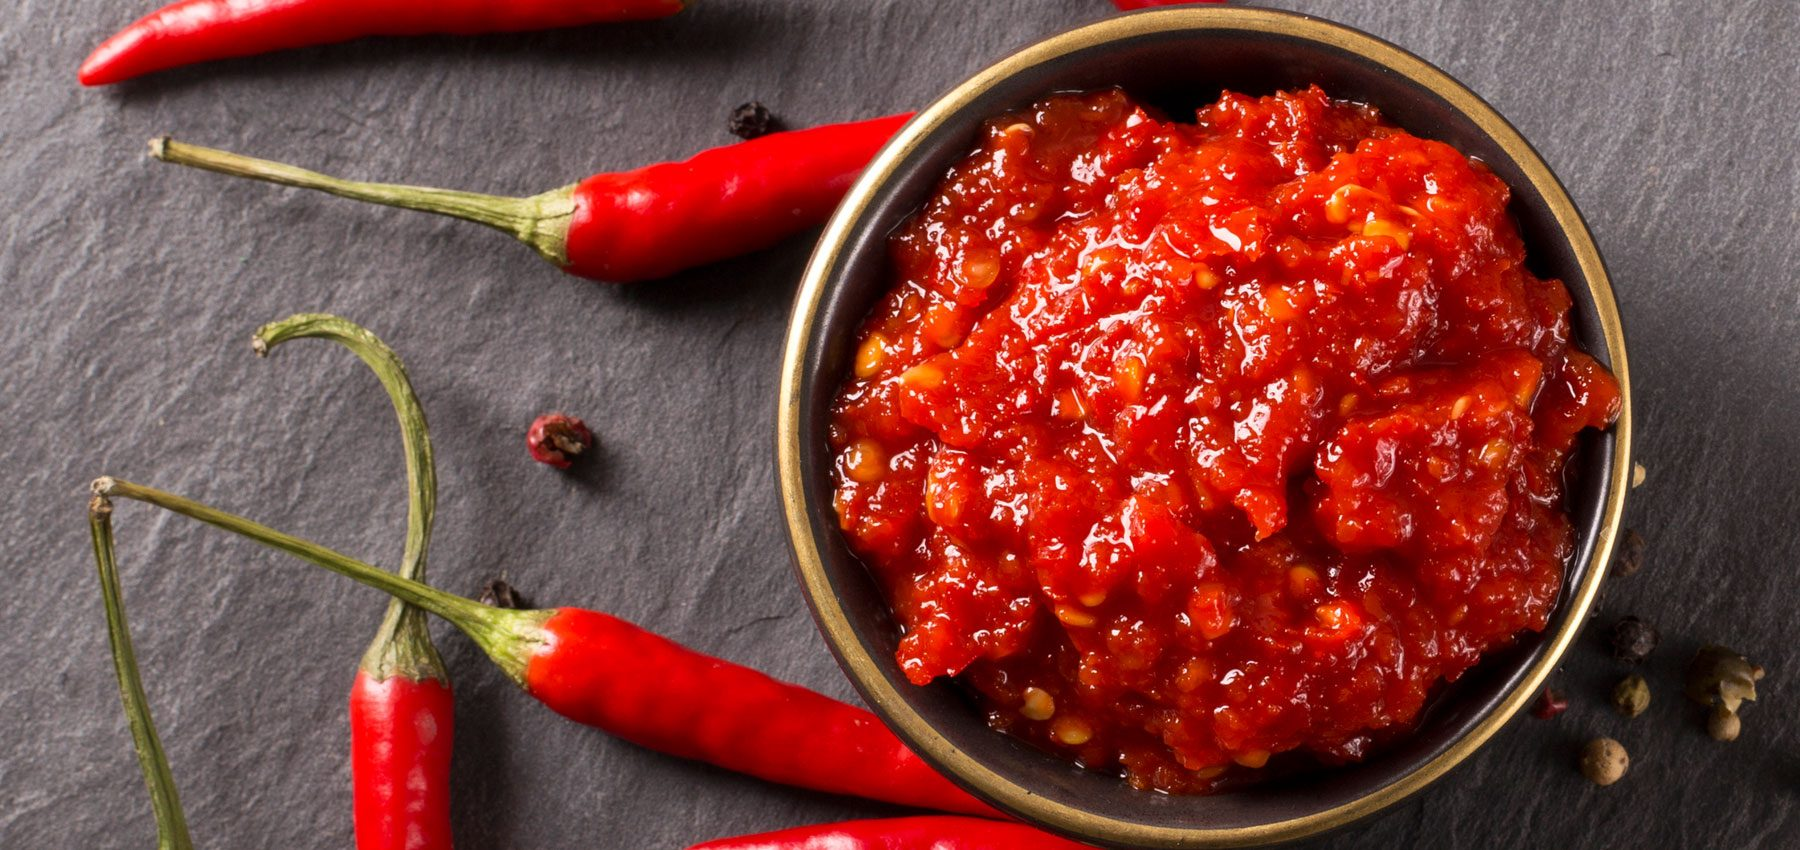 Chilli Sauce Market I Hot Sauce Market I Market Analysis, Size, Growth, Trends, Forecast till 2024